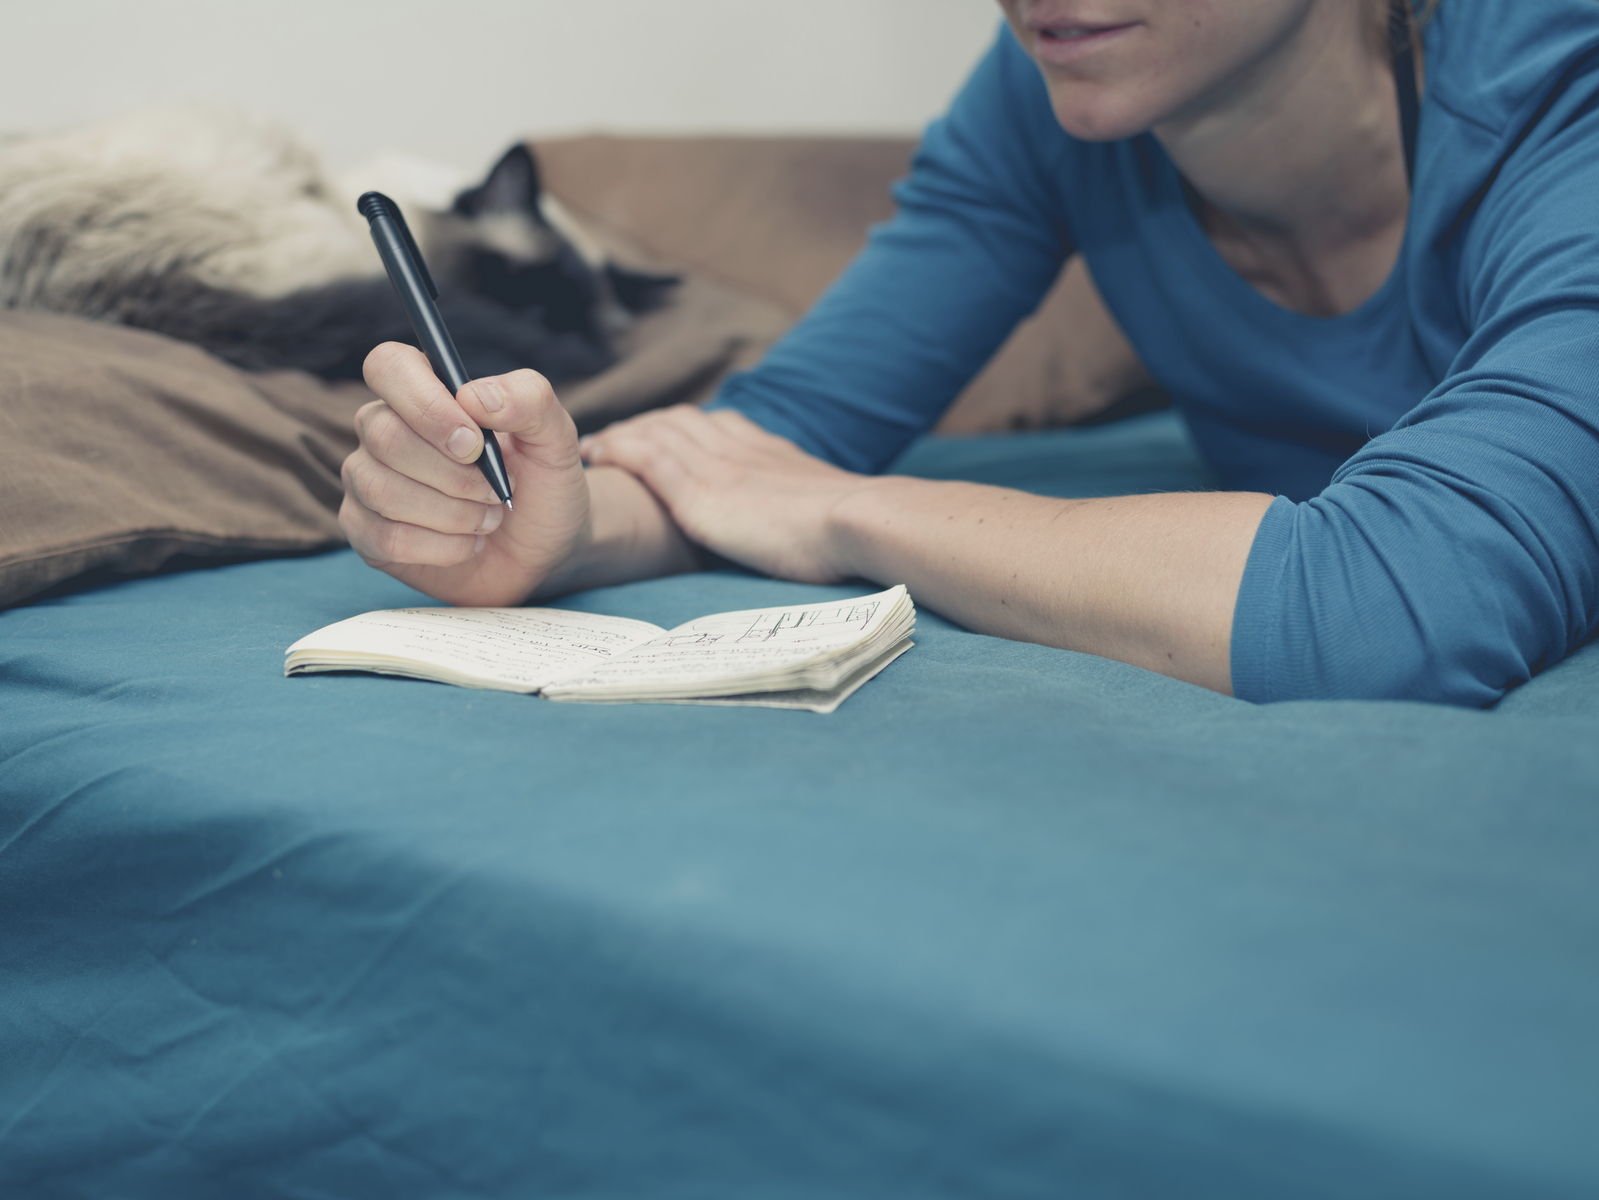 Woman taking notes in bed with cat